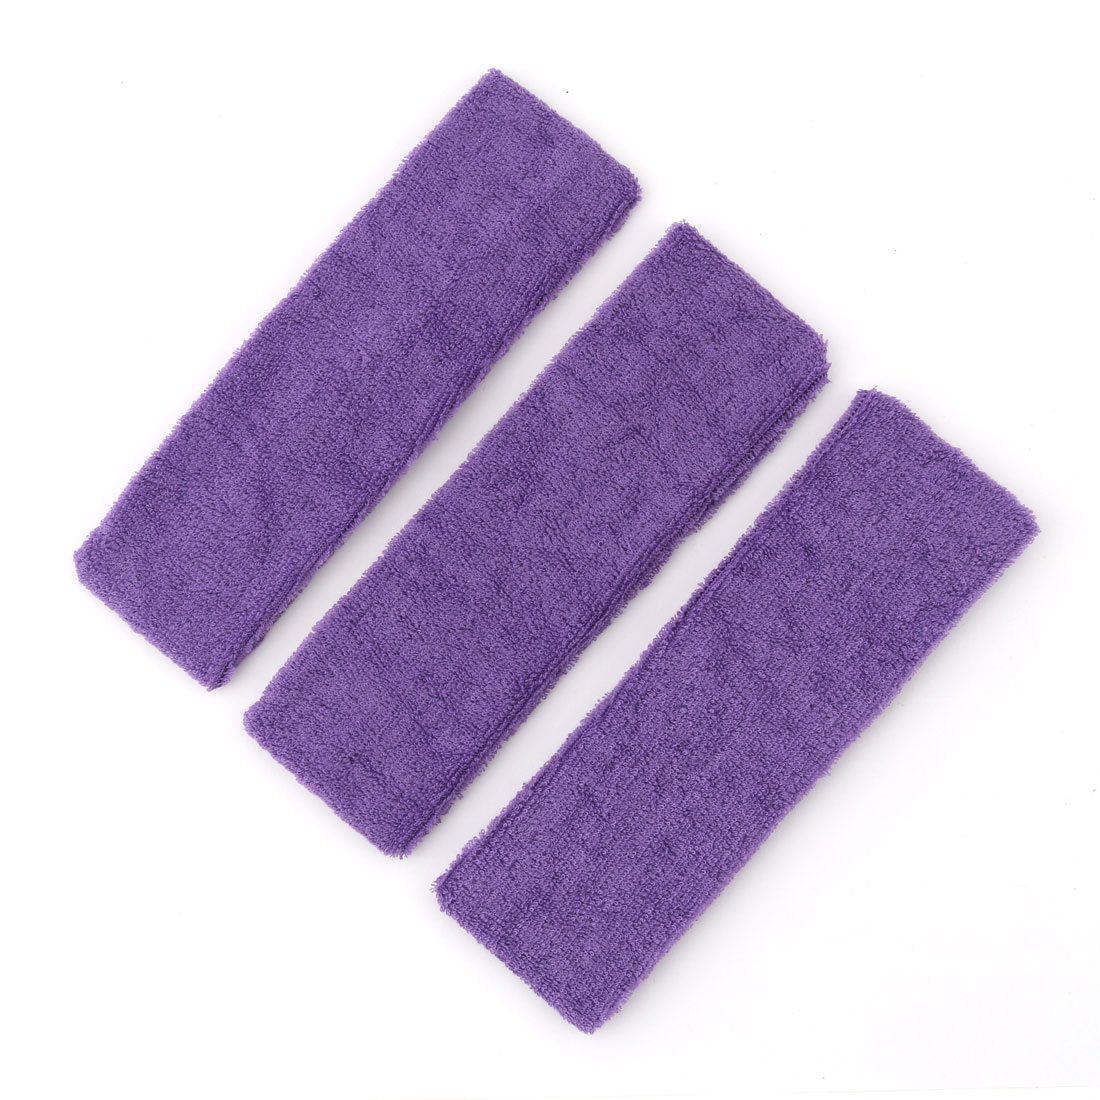 Yoga Sport Running Exercise Elastic Wide Hair Band Sweatband HeadBand Purple 3 PCS